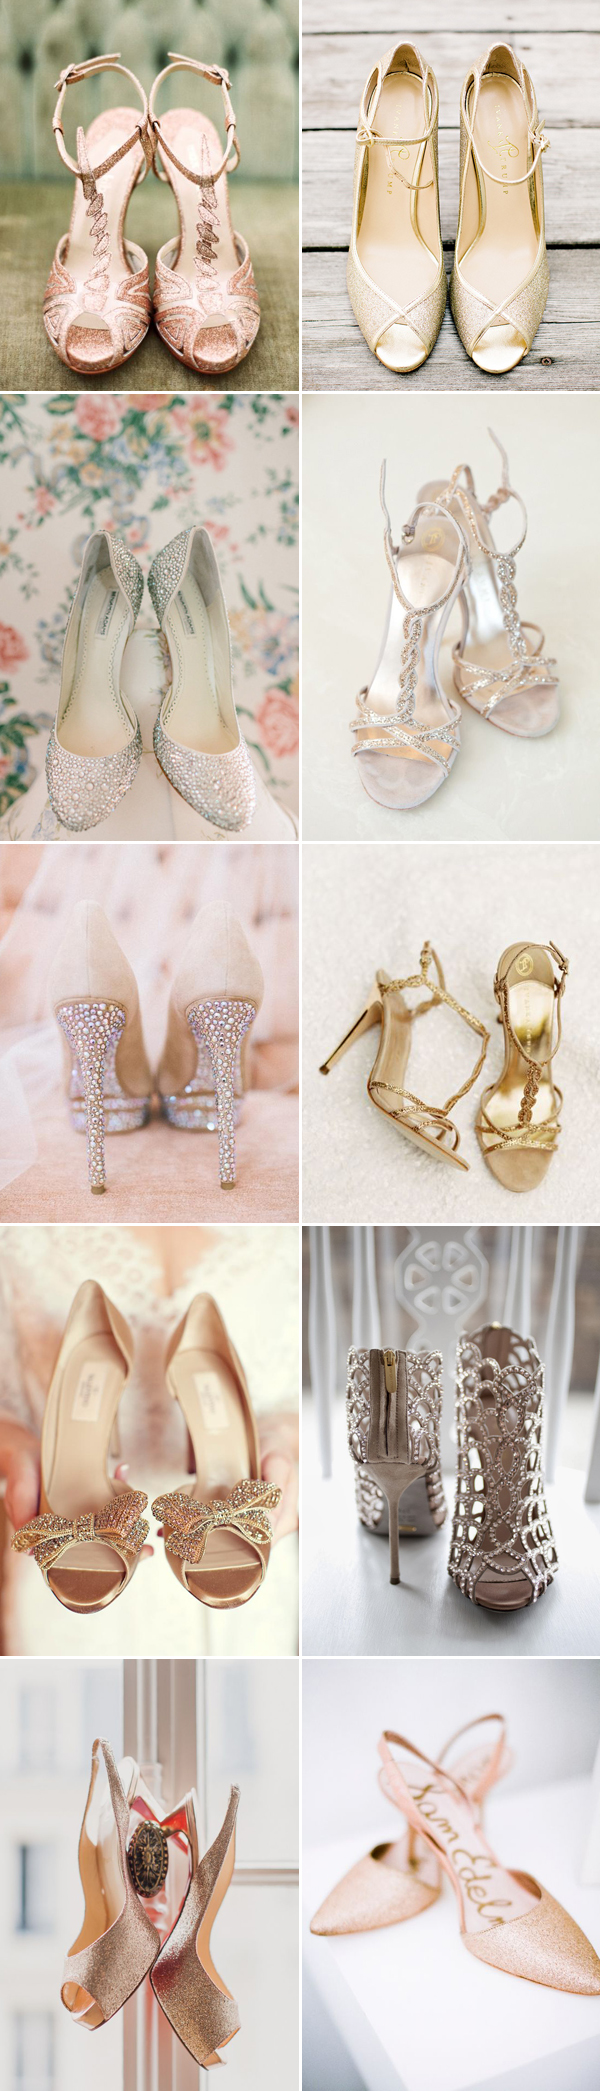 Wedding_Philippines_Most_Loved_Wedding_Shoes_for_Brides_Top-10-Elegant-Glitter-Wedding-Shoes